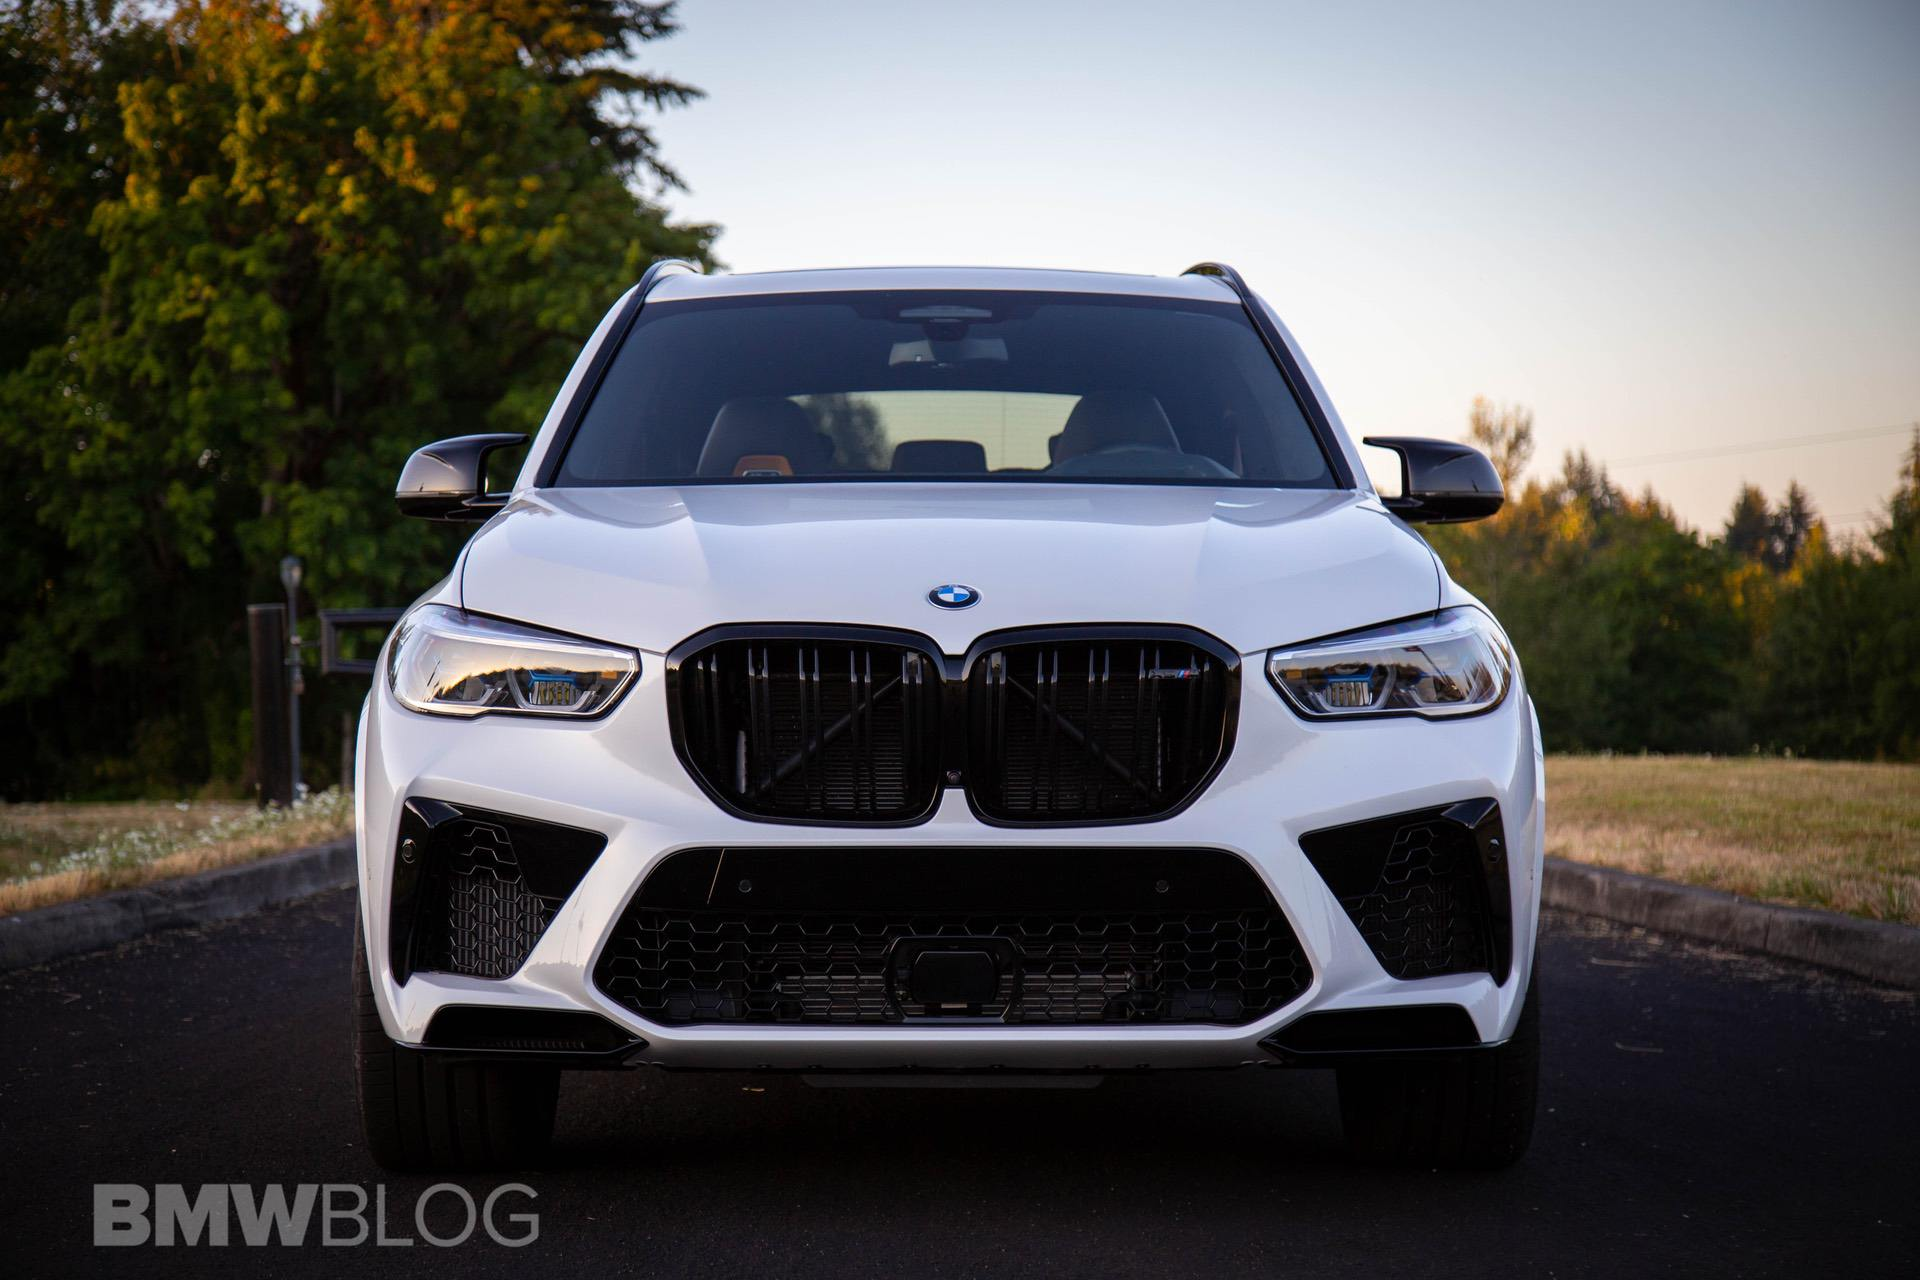 2021 bmw x5 m competition road trip 01